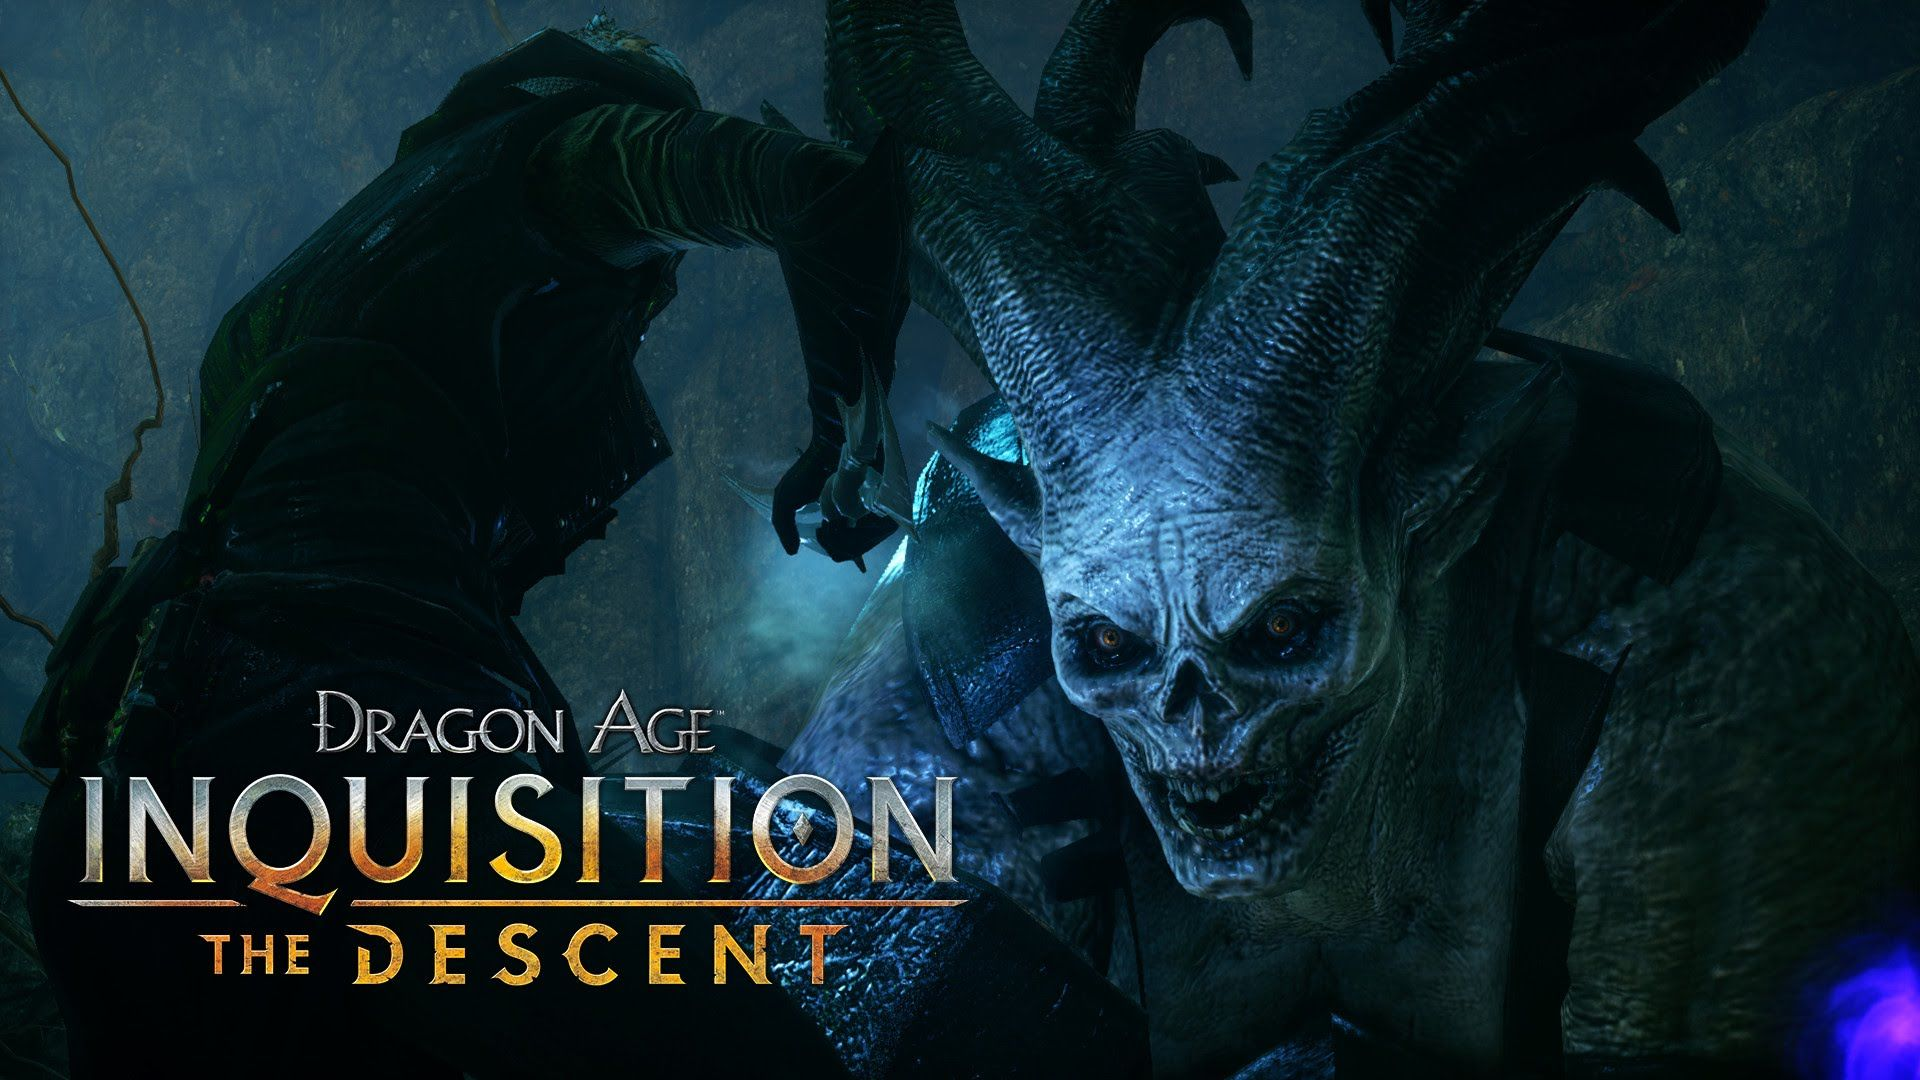 DRAGON AGE™: INQUISITION Official Trailer – The Descent (DLC) | Dragon age, Dragon  age inquisition, Dragon age romance